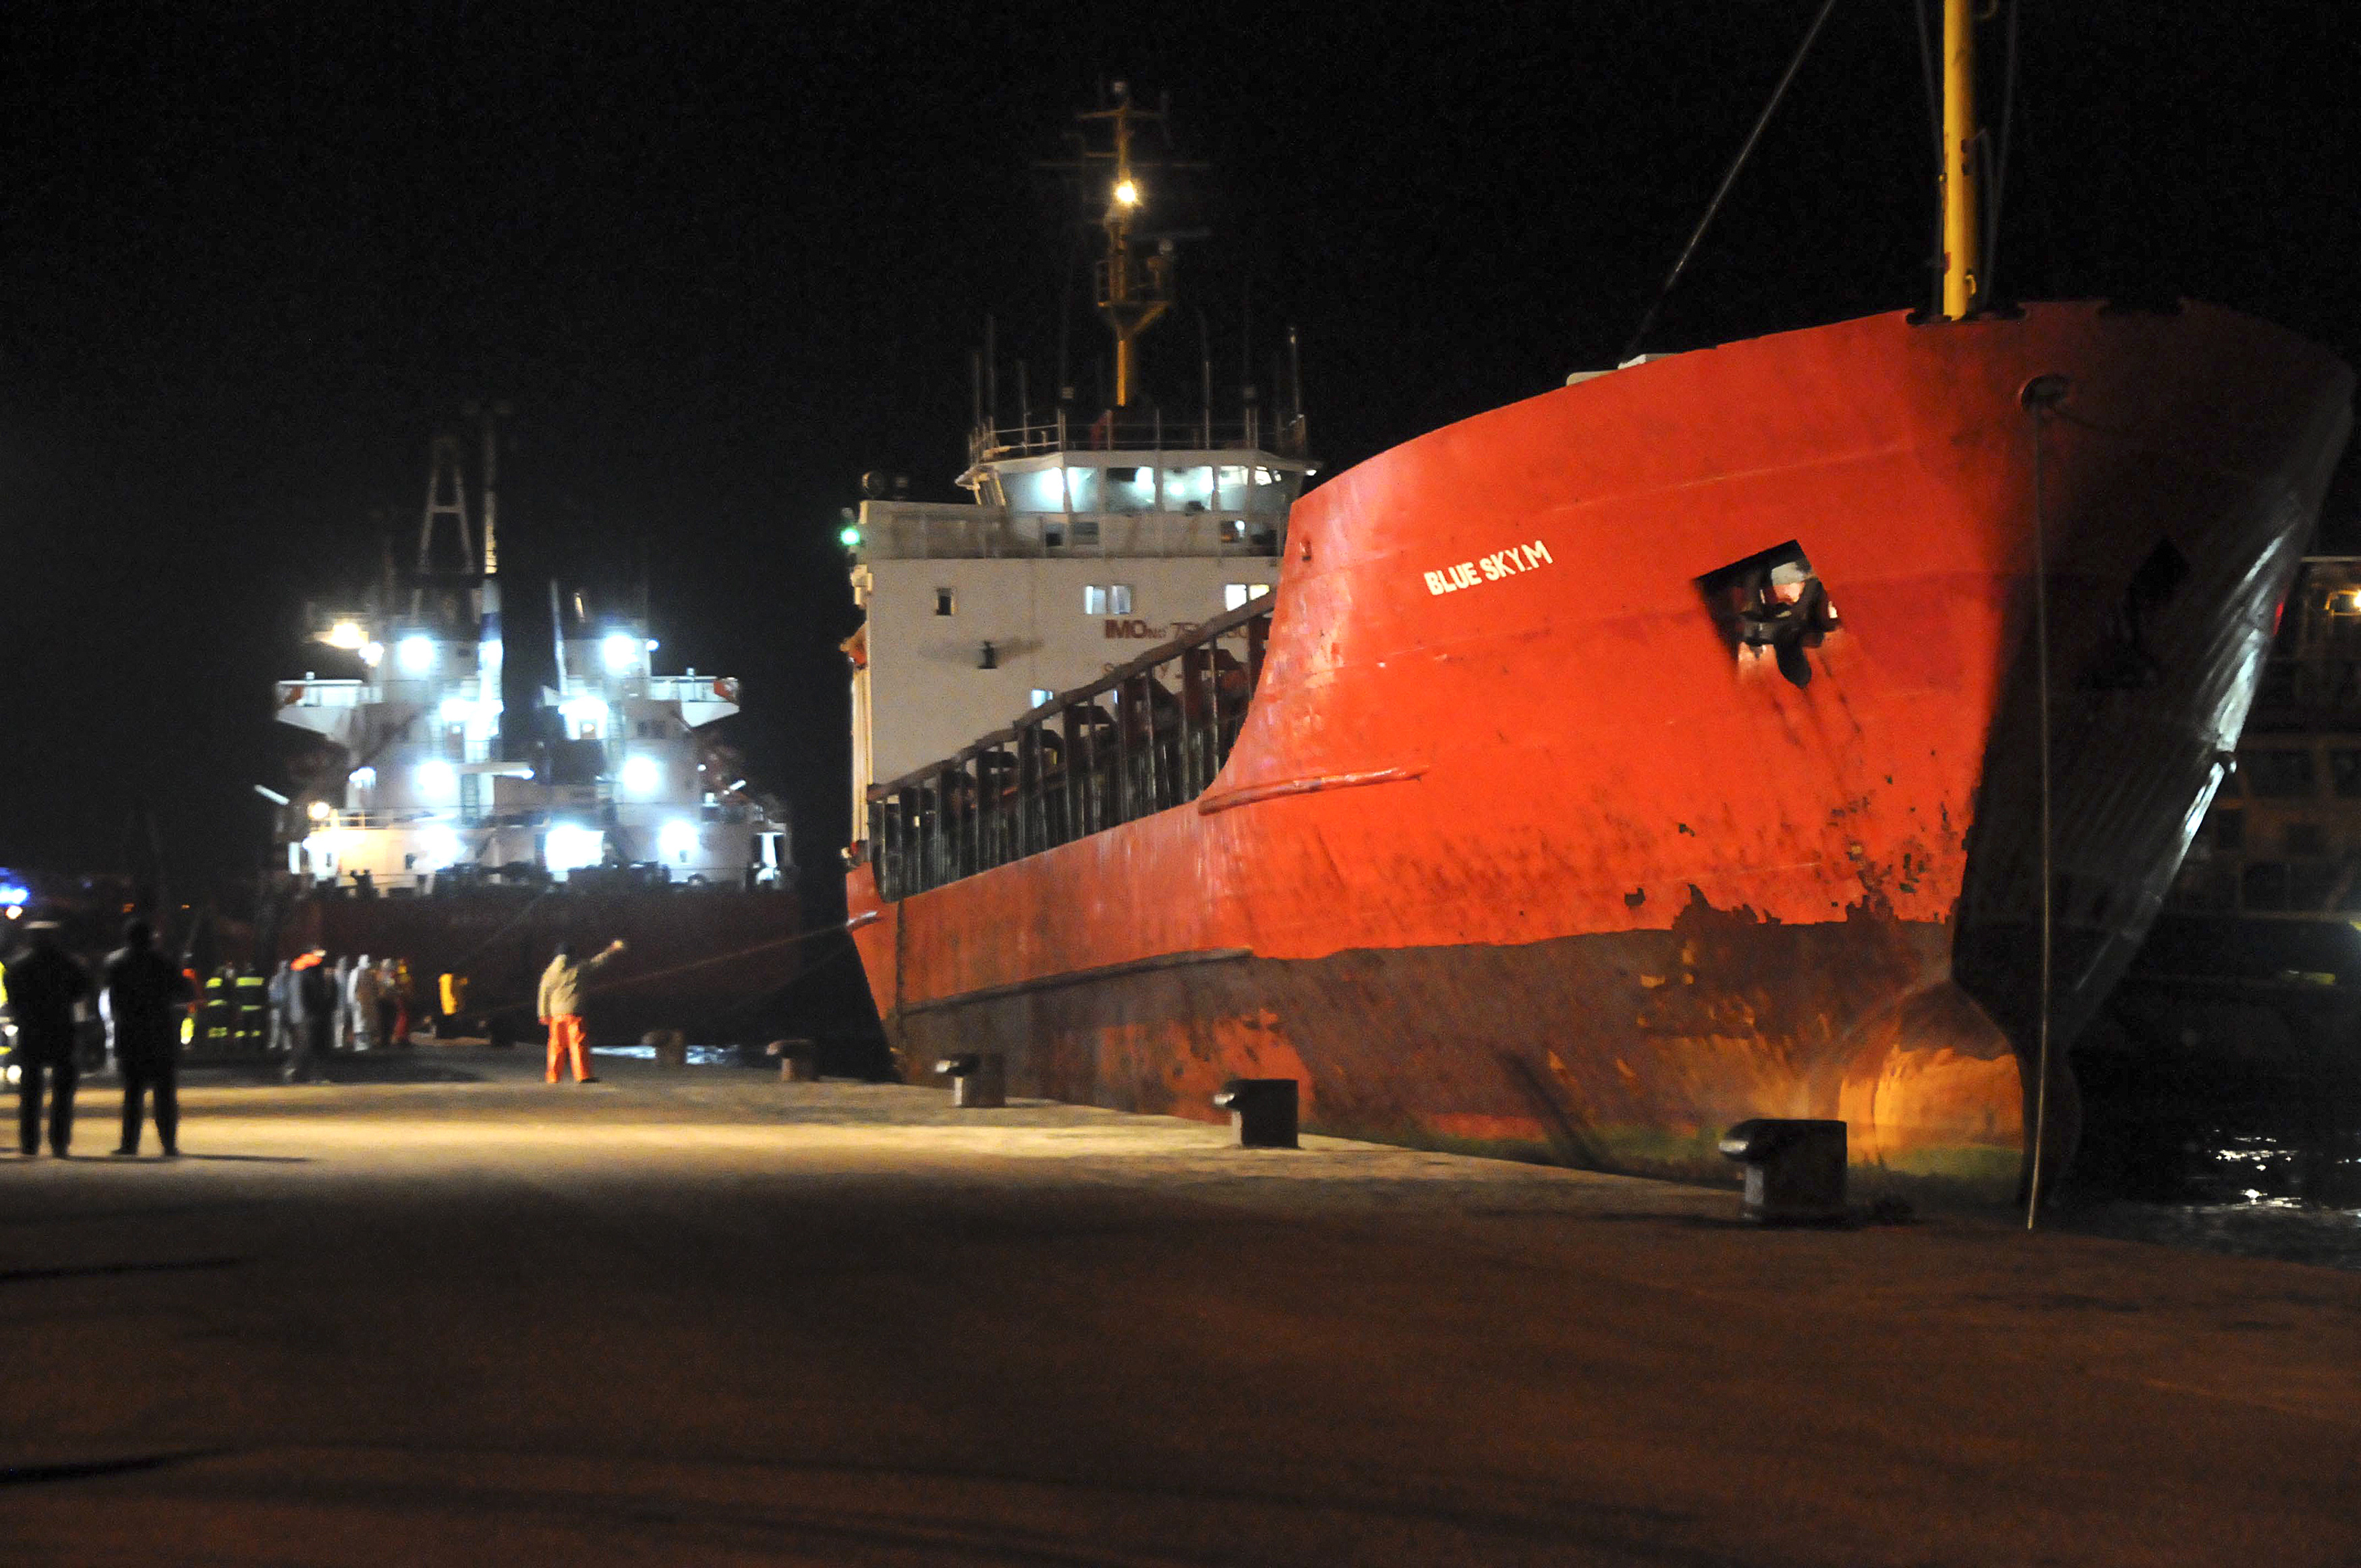 The Blue Sky M cargo ship docked at the Gallipoli harbour in southern Italy on 31 Dec. [Reuters]